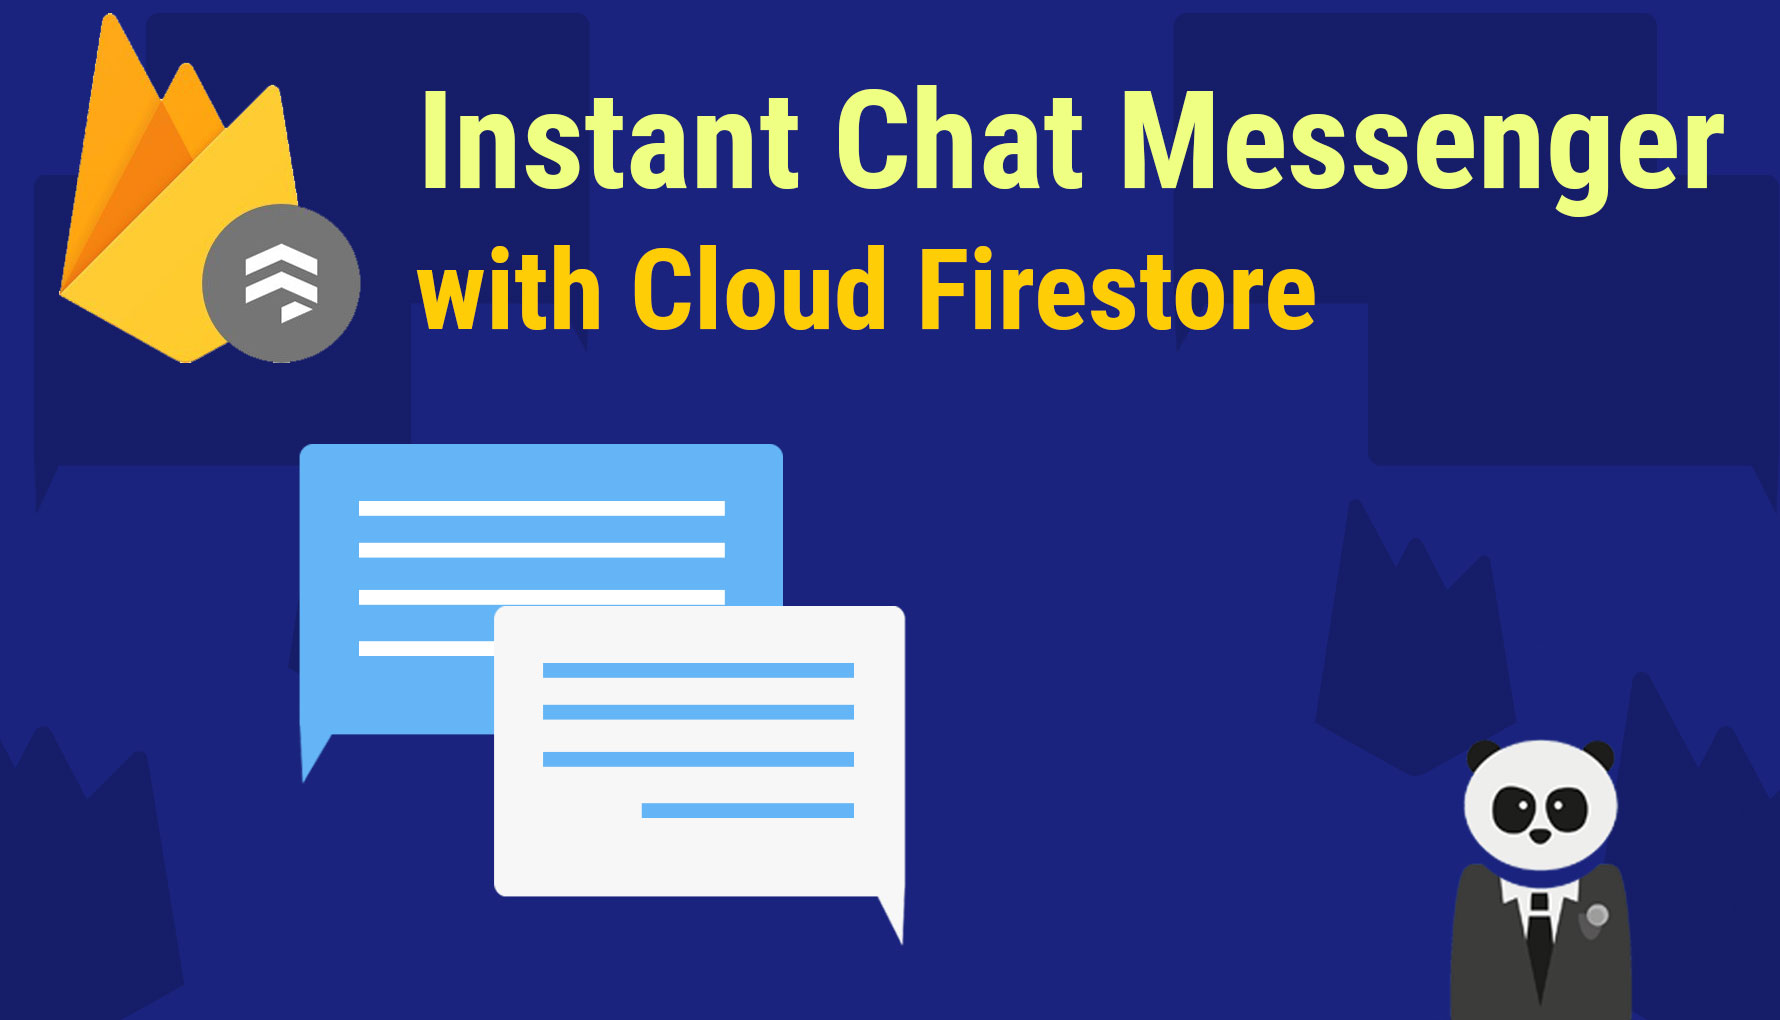 Instant Chat Messenger with Cloud Firestore